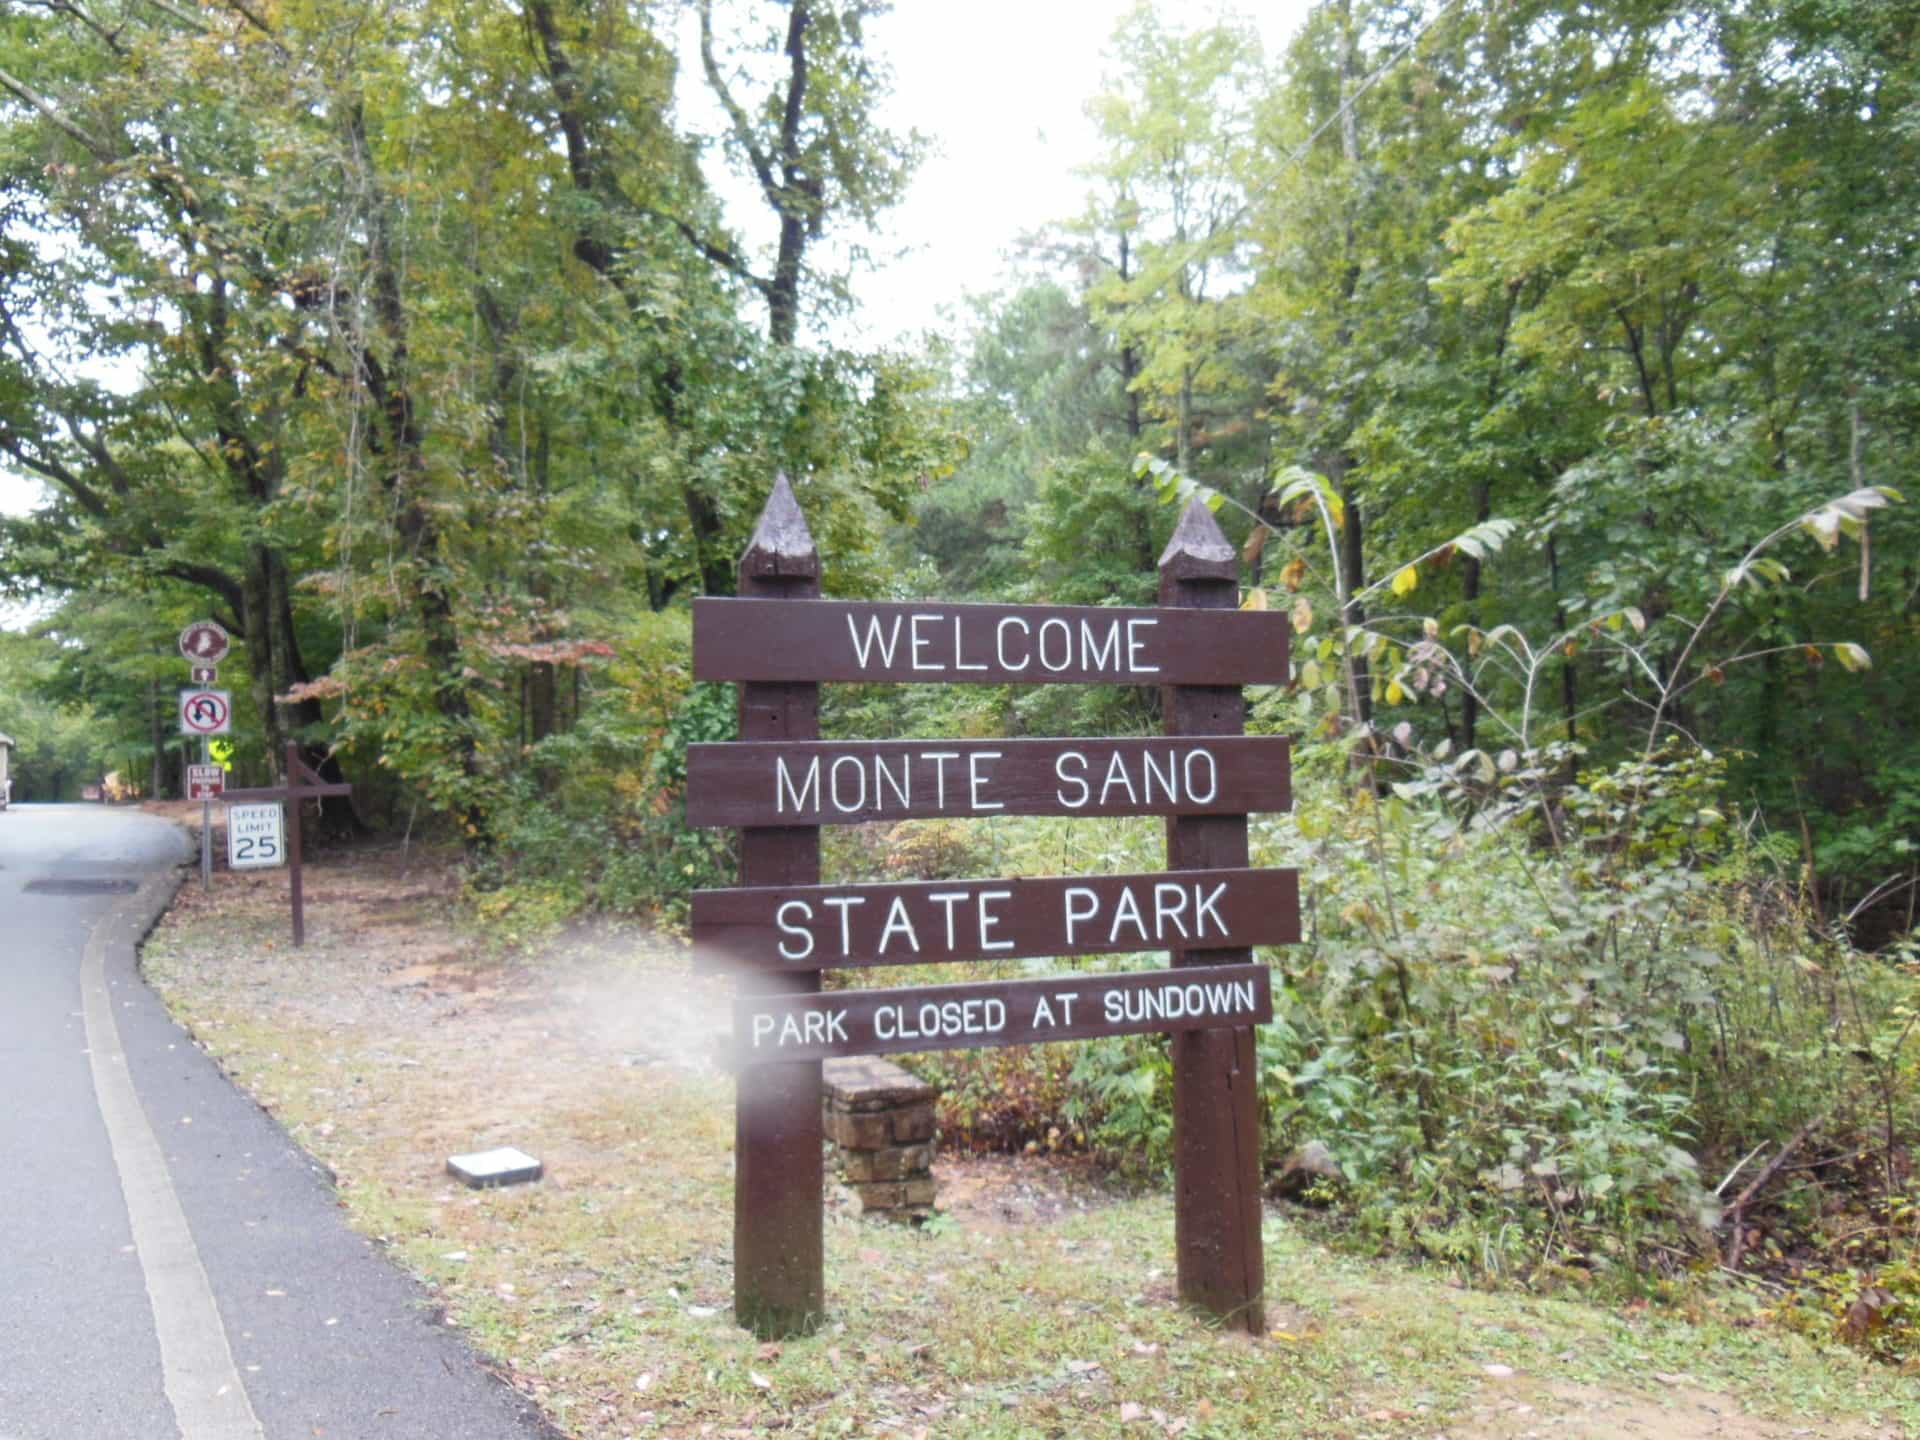 Monte Sano State Park - Welcome Sign